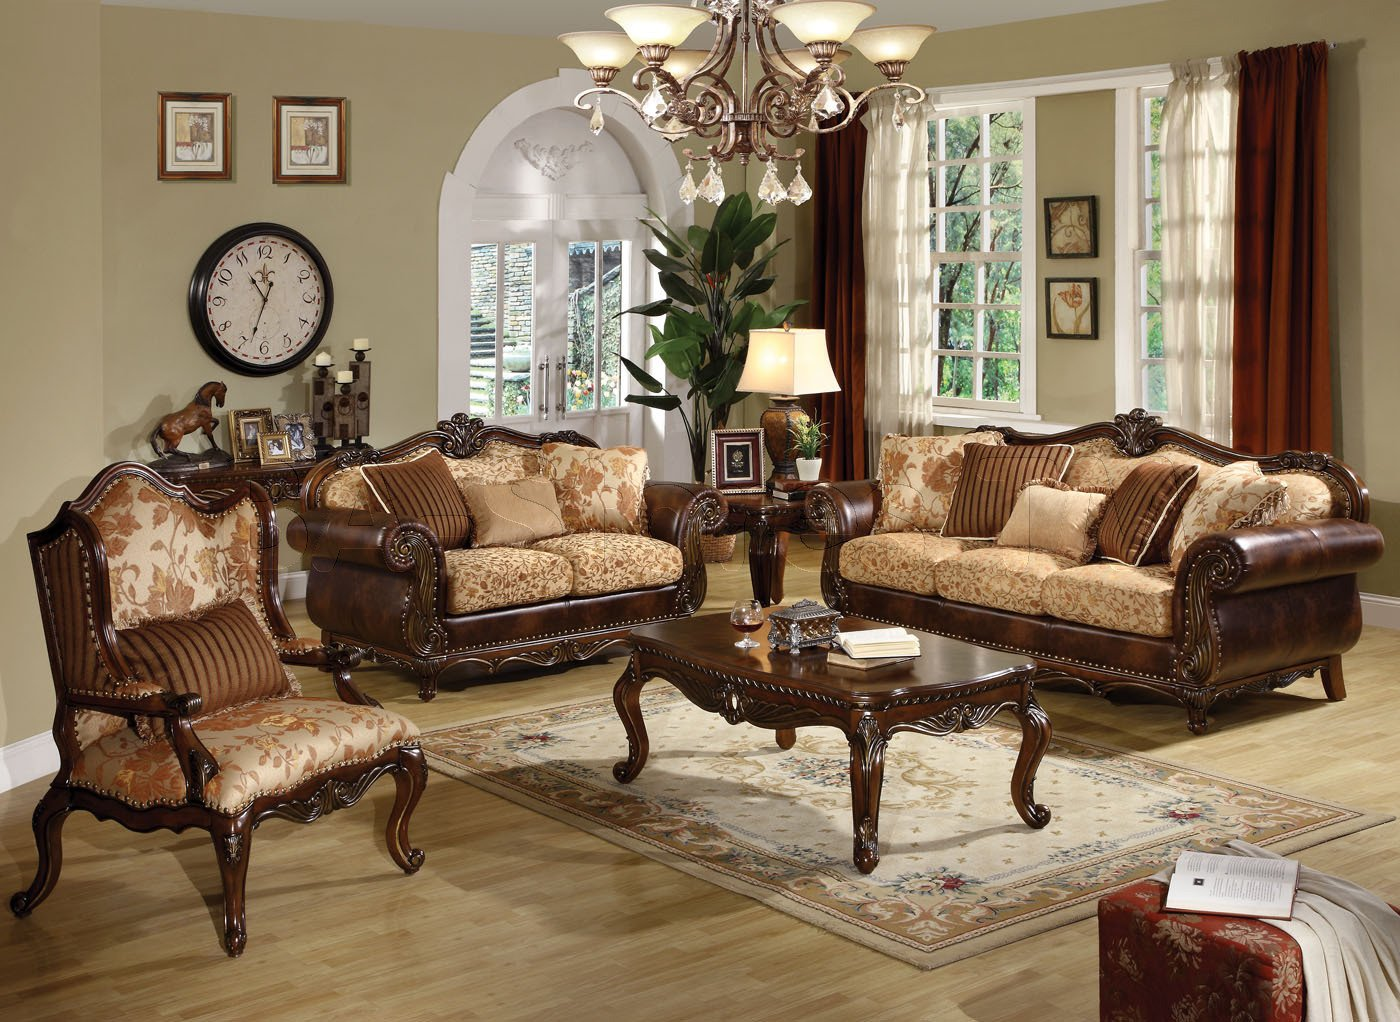 Traditional Living Room Furniture Luxury Best Furniture Ideas for Home Traditional Classic Furniture Styles Luxury Living Room Design